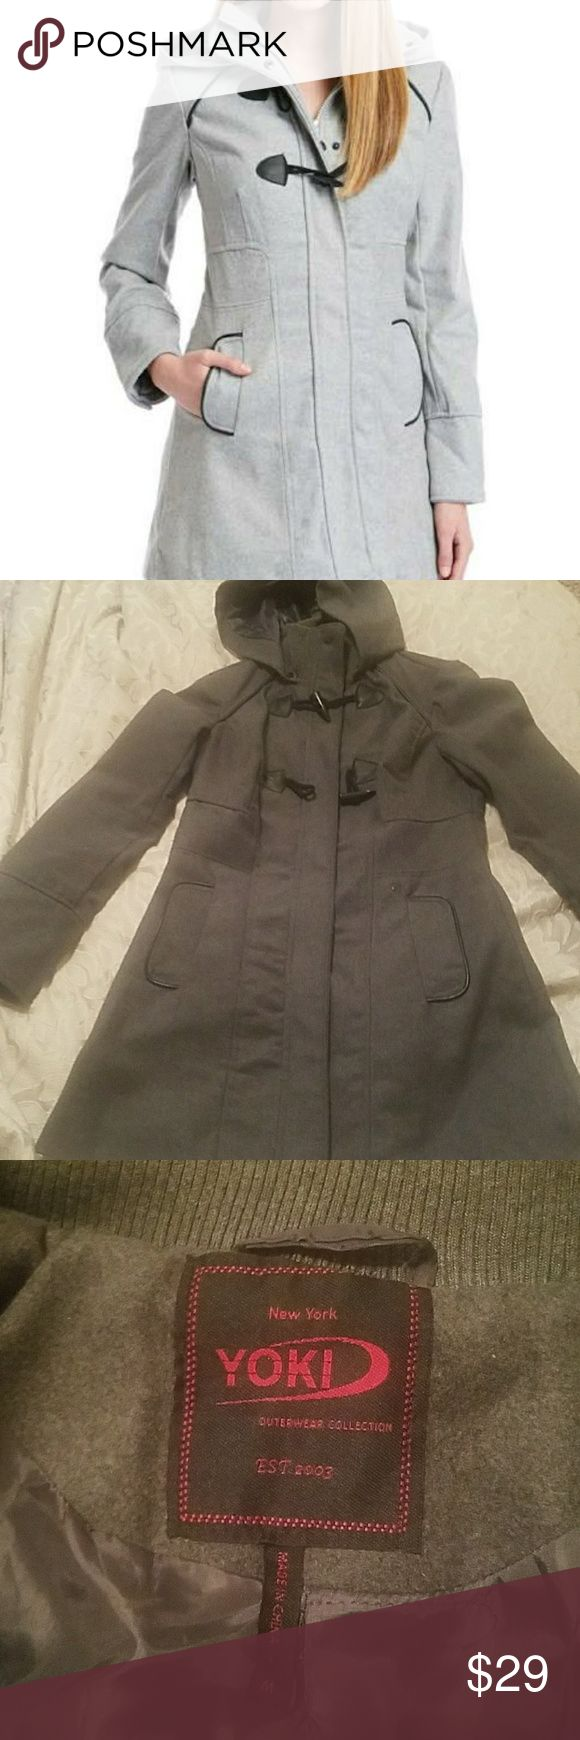 YOKI coat Dark gray ladies coat by Yoki, lined, detachable hood,zipper and buttons down the front, 3 buttons on each sleeve, 2 closures at top, accepting all reasonable offers, bundle for discounts Yoki Jackets & Coats